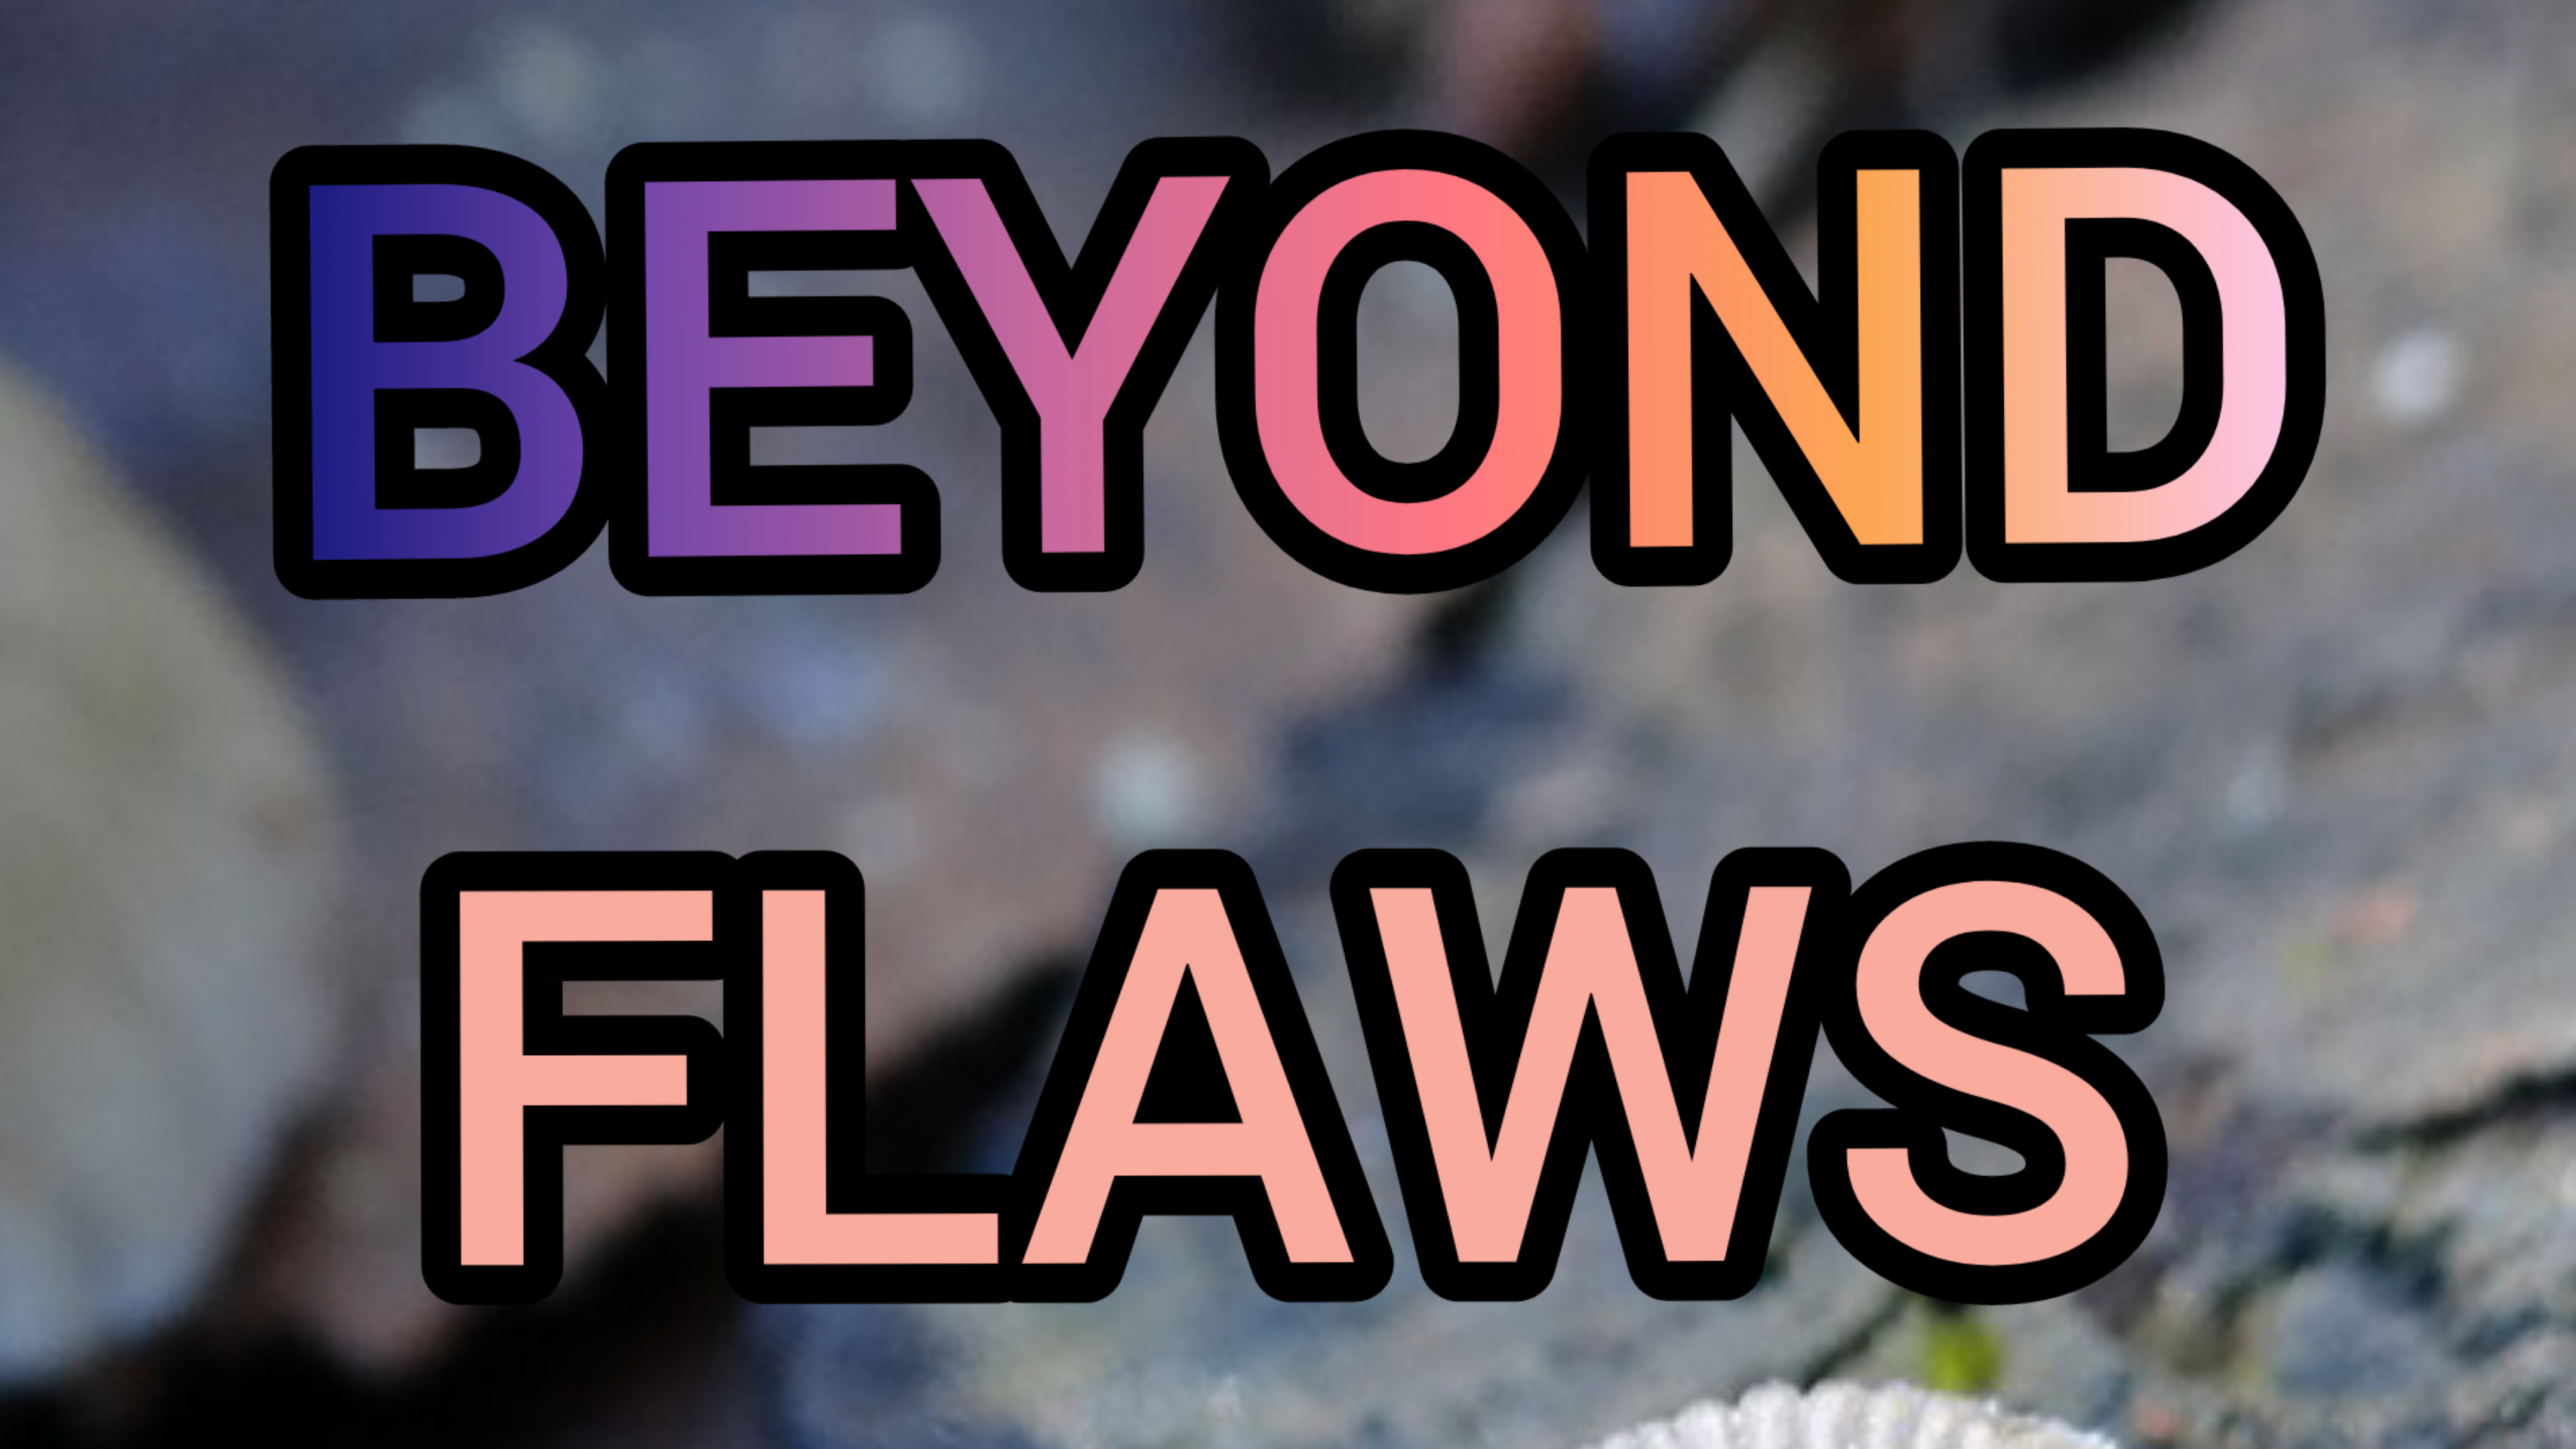 Beyond Flaws: Spoken Word Poetry